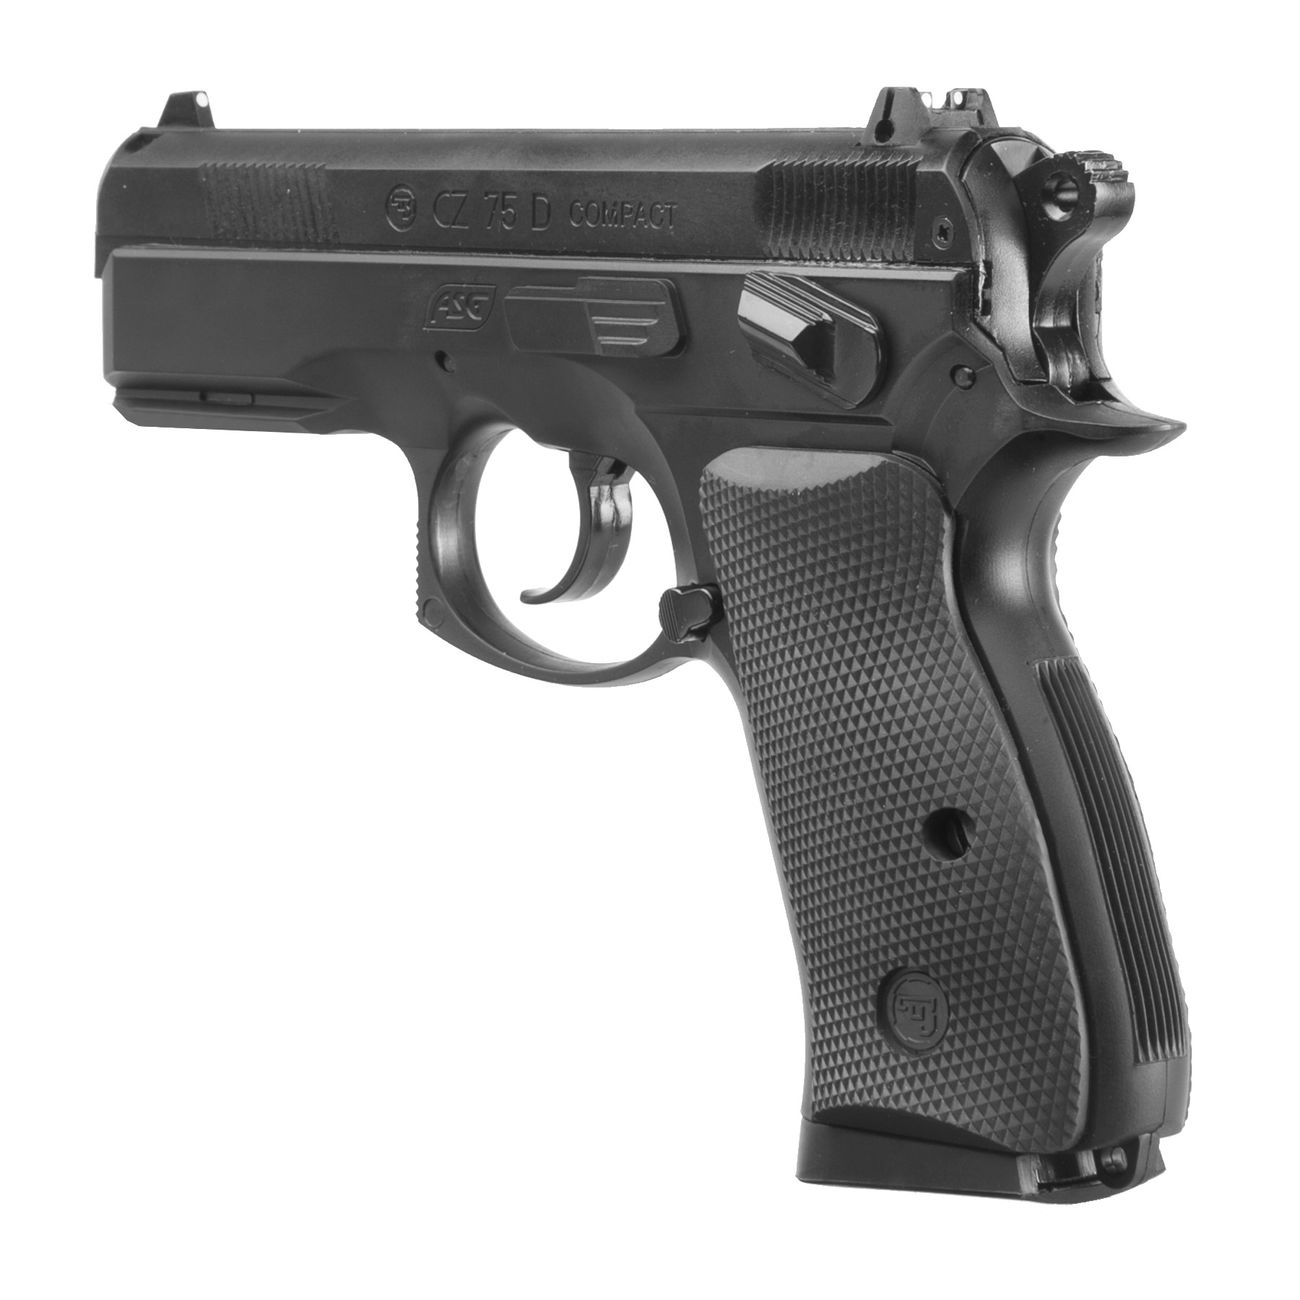 ASG CZ 75D Compact CO2 Luftpistole 4,5mm BB 2